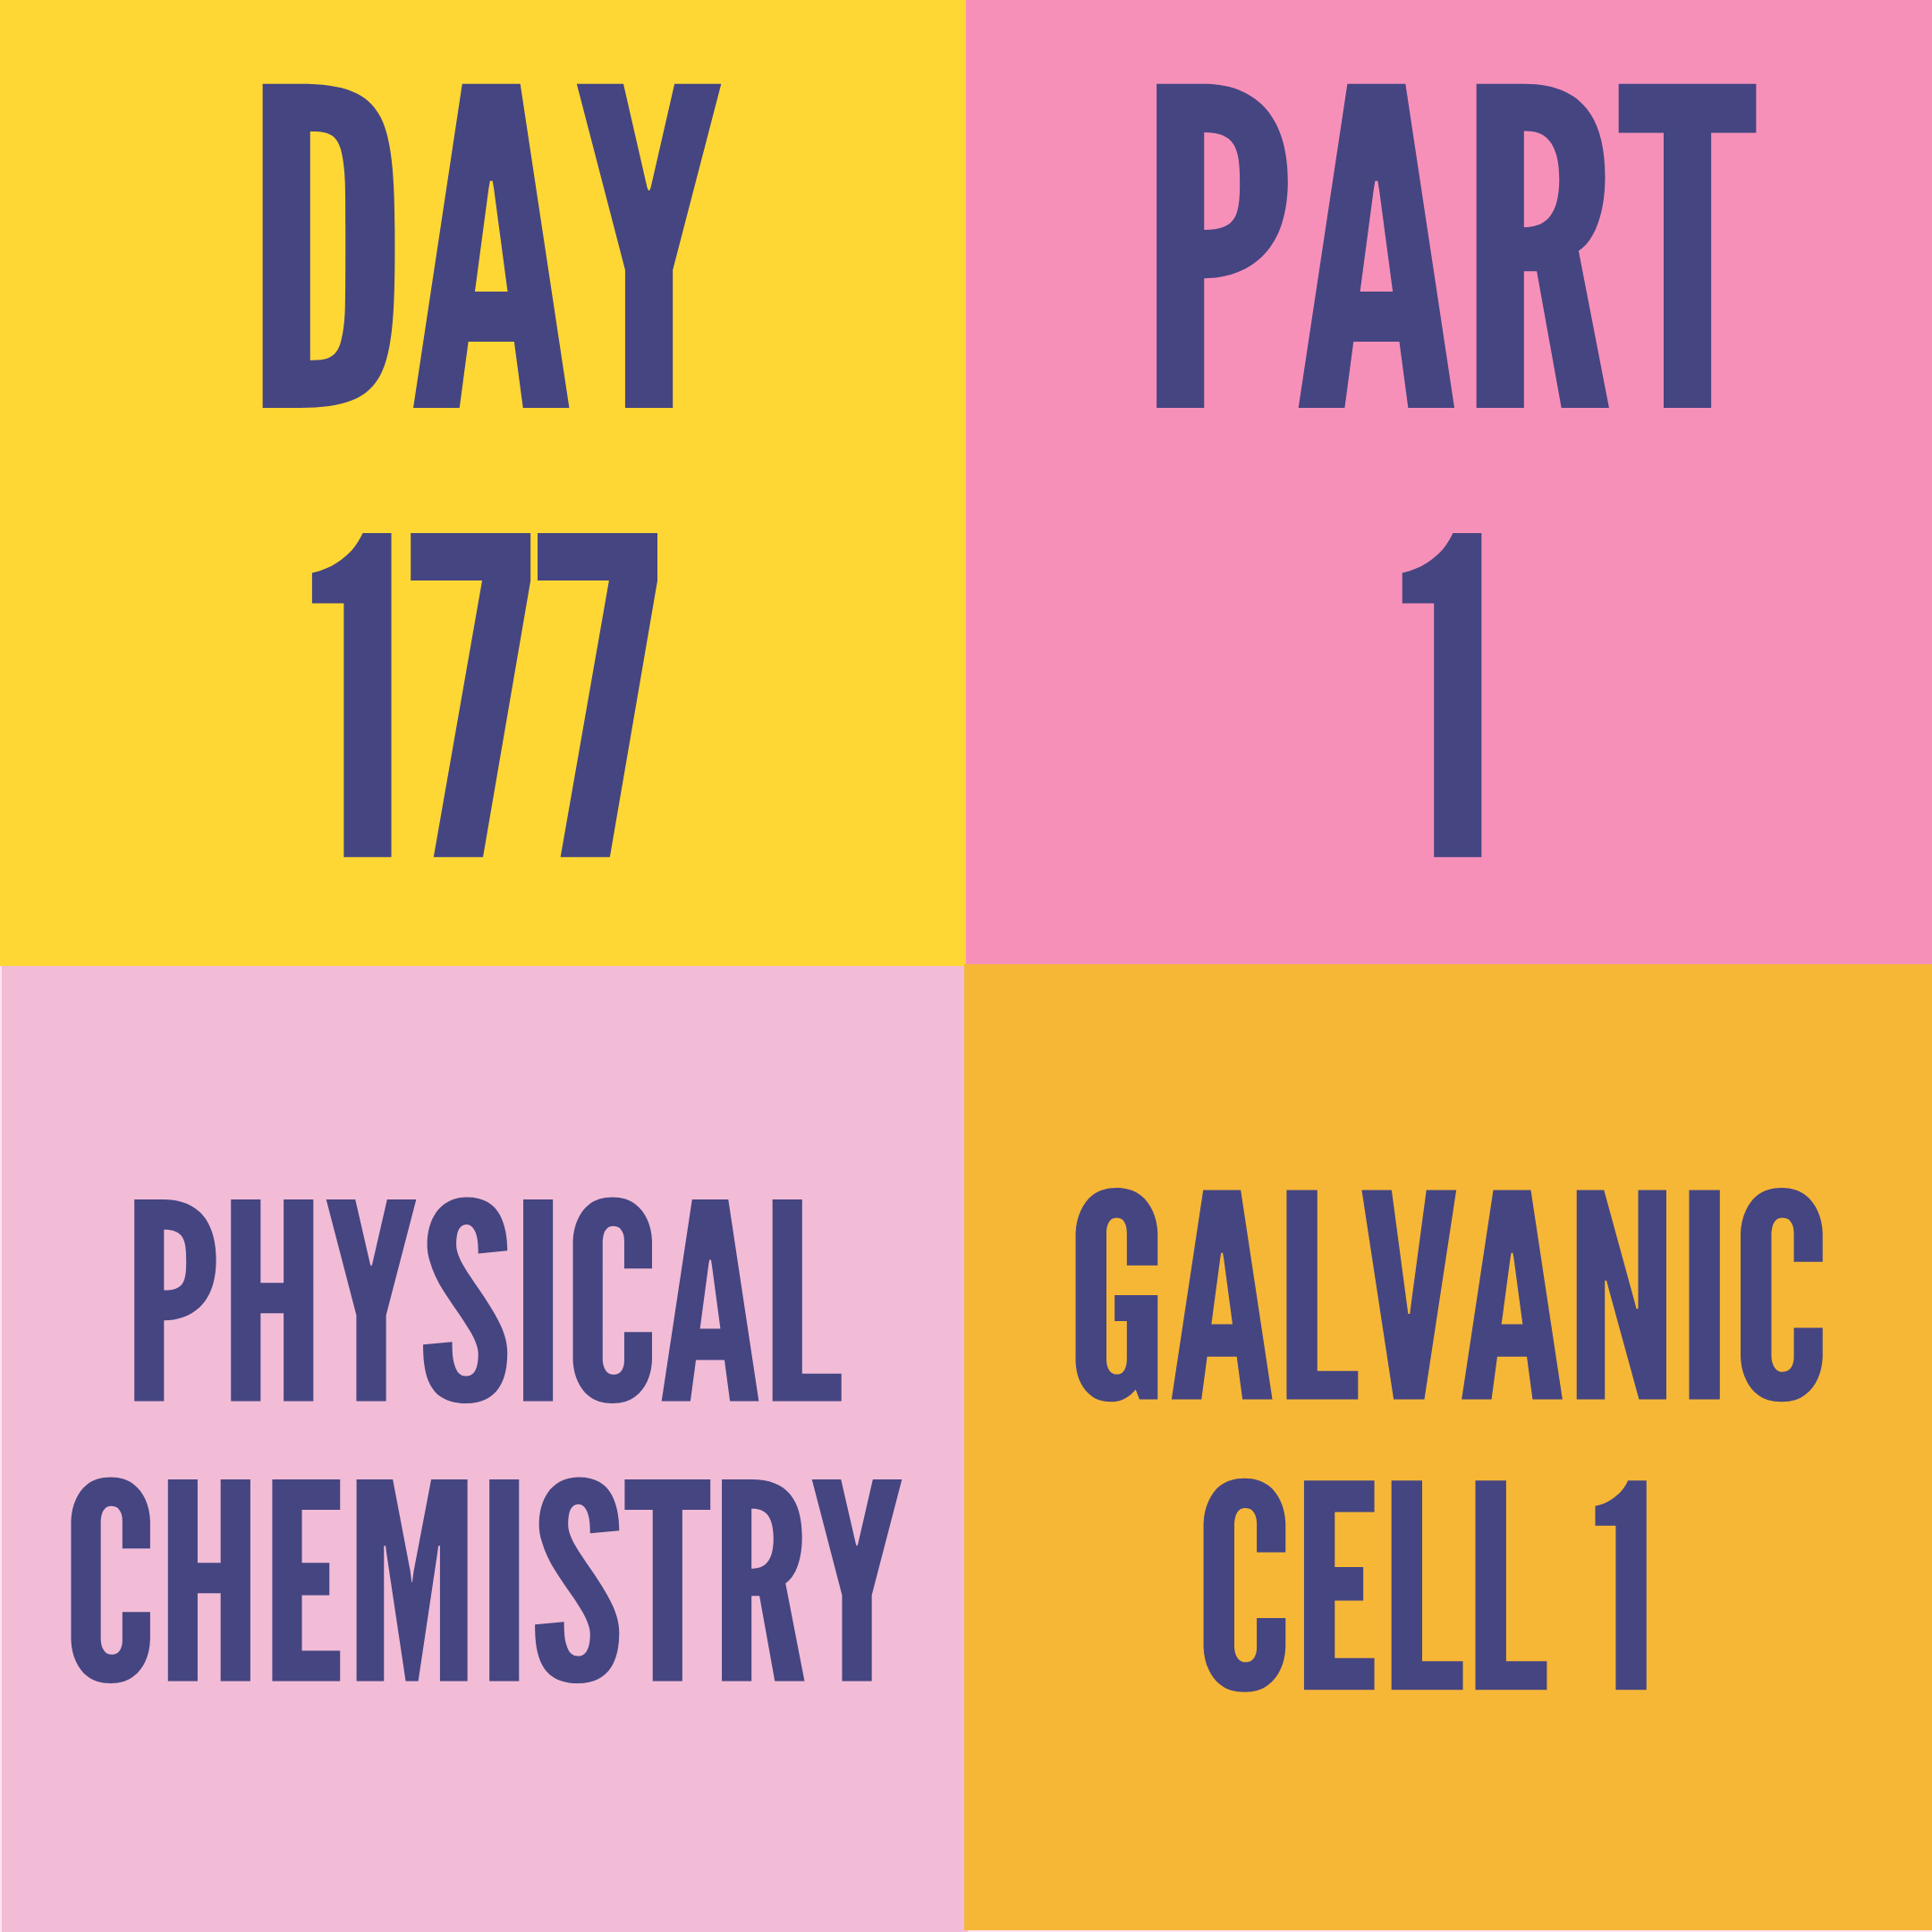 DAY-177 PART-1 GALVANIC CELL 1